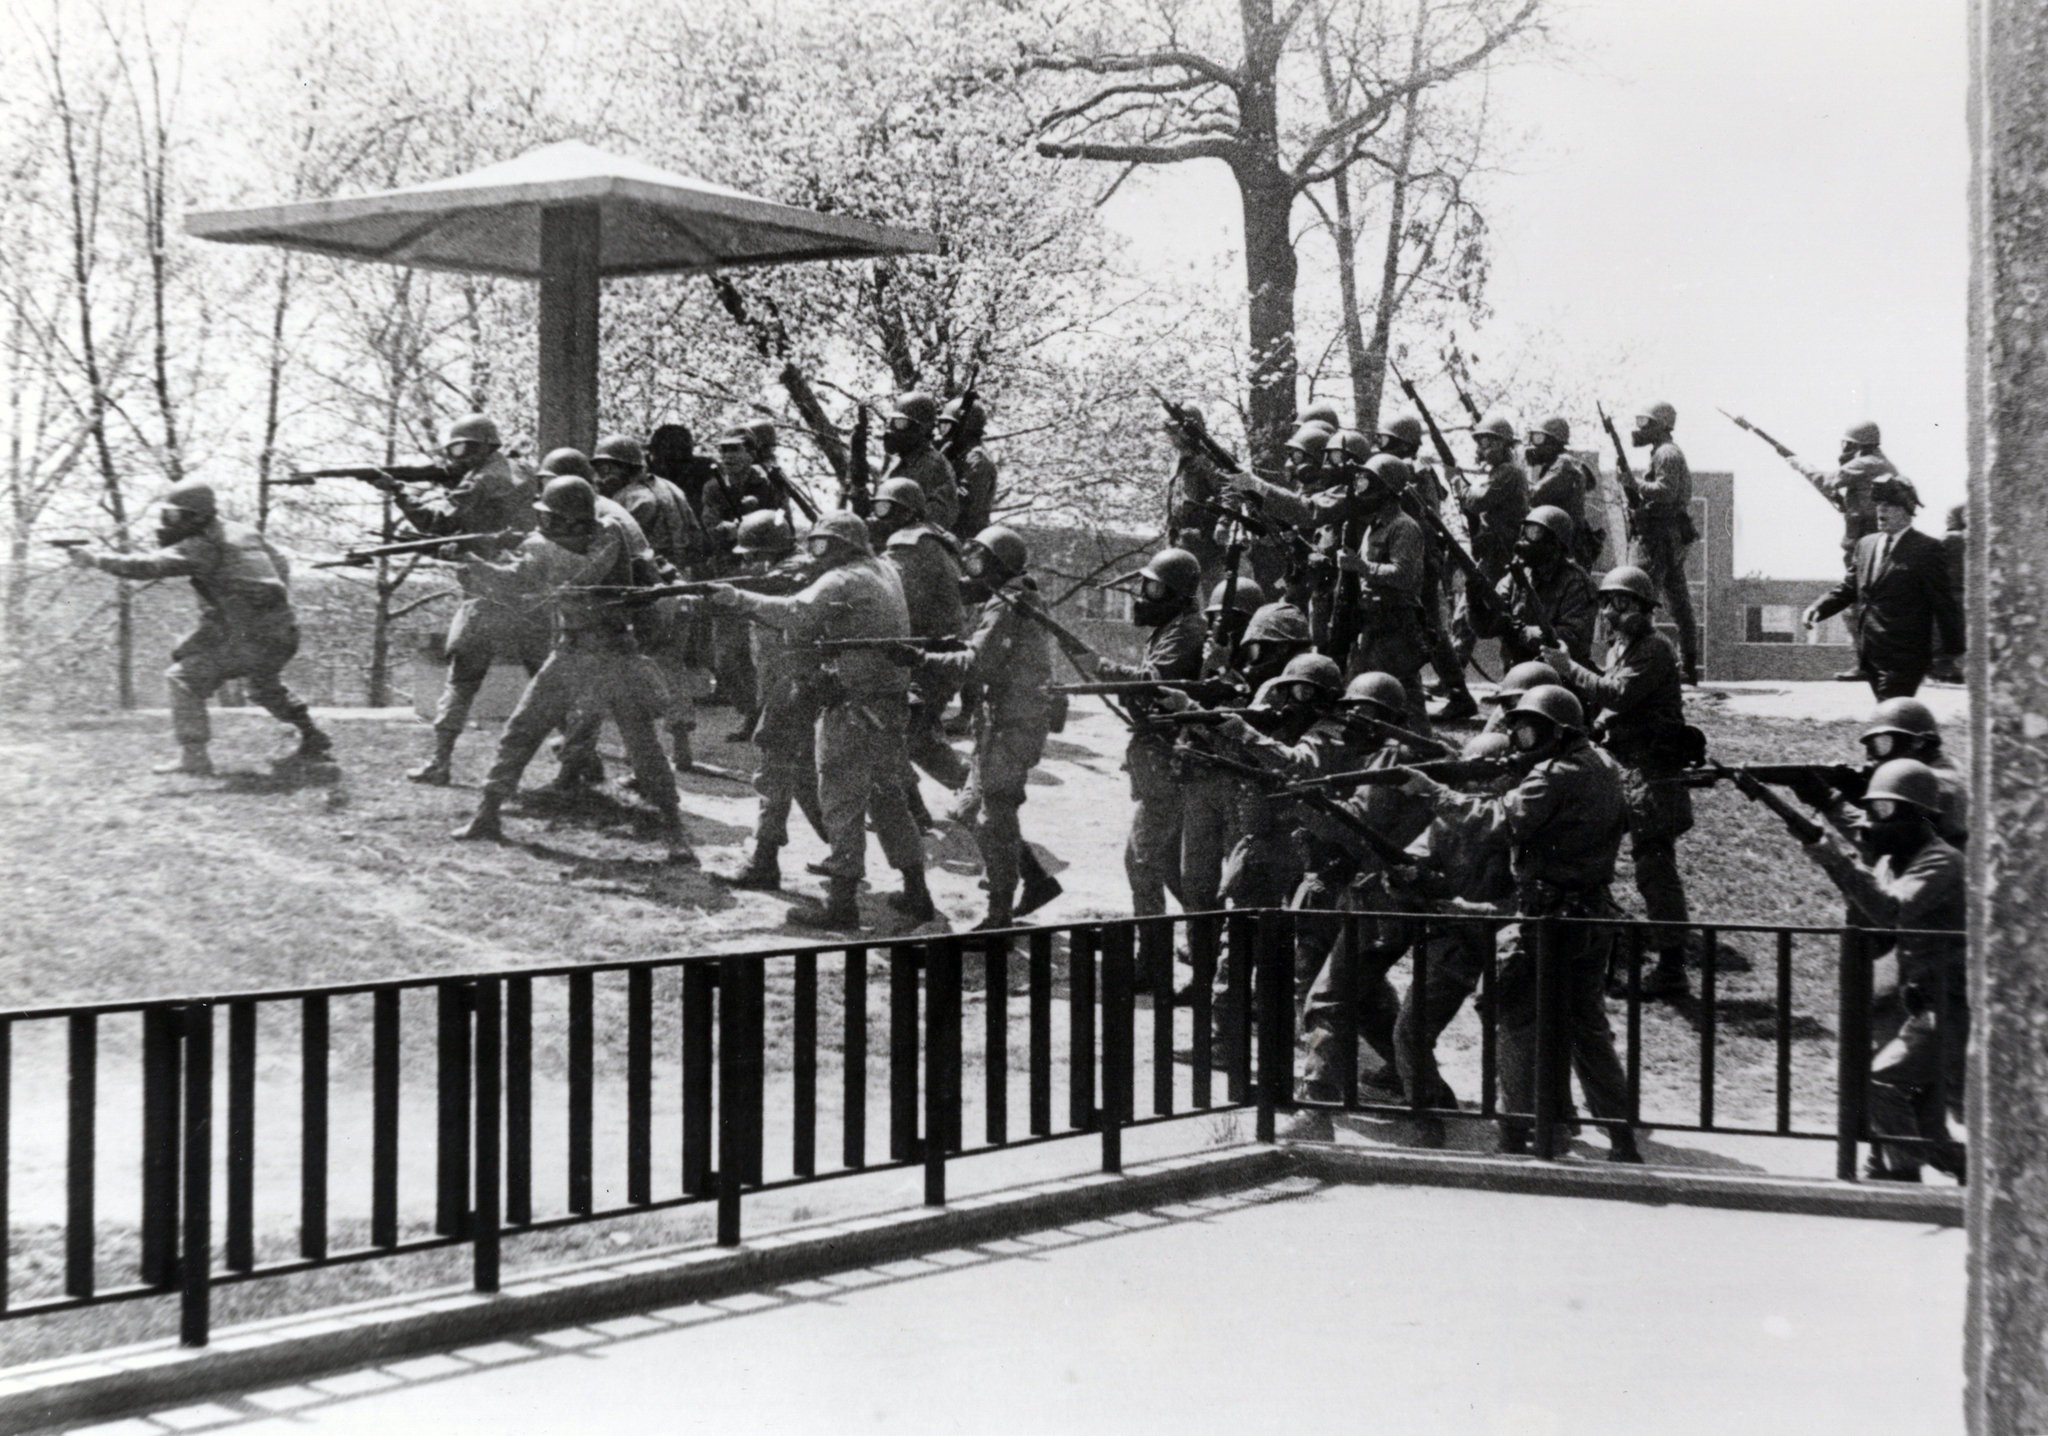 Justice Department won't reopen probe of 1970 Kent State shootings ...